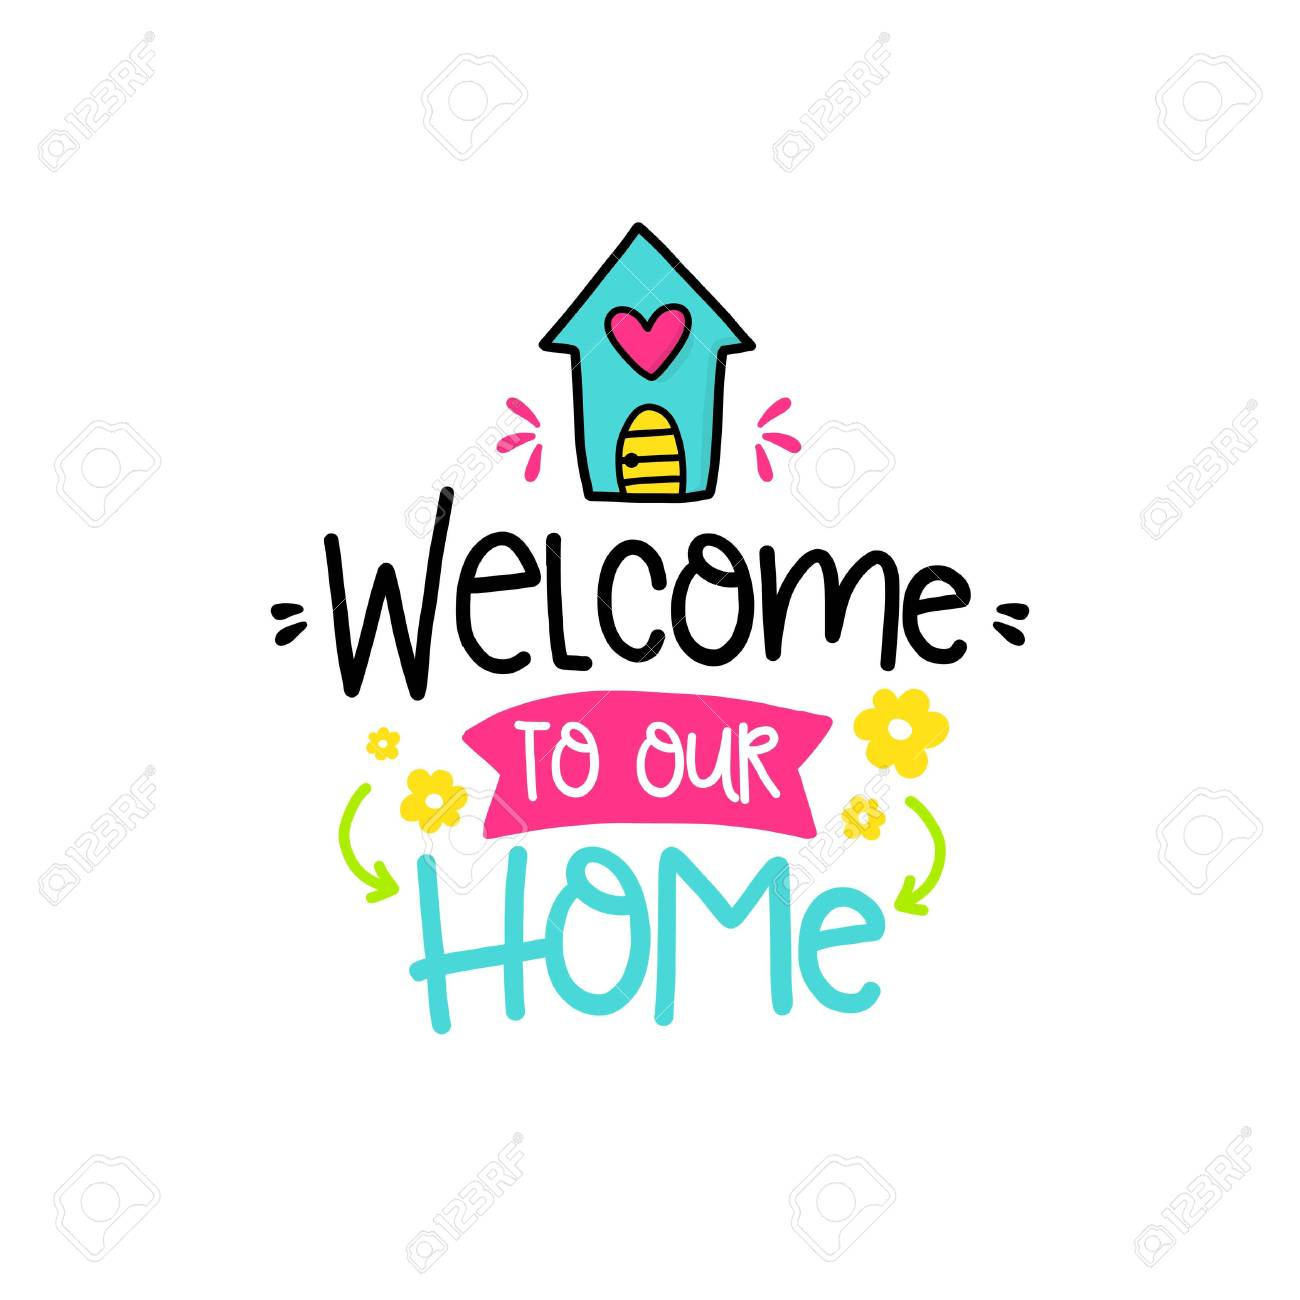 vector poster with phrase house and decor elements typography rh 123rf com welcome to our house lyrics welcome to our house flo rida